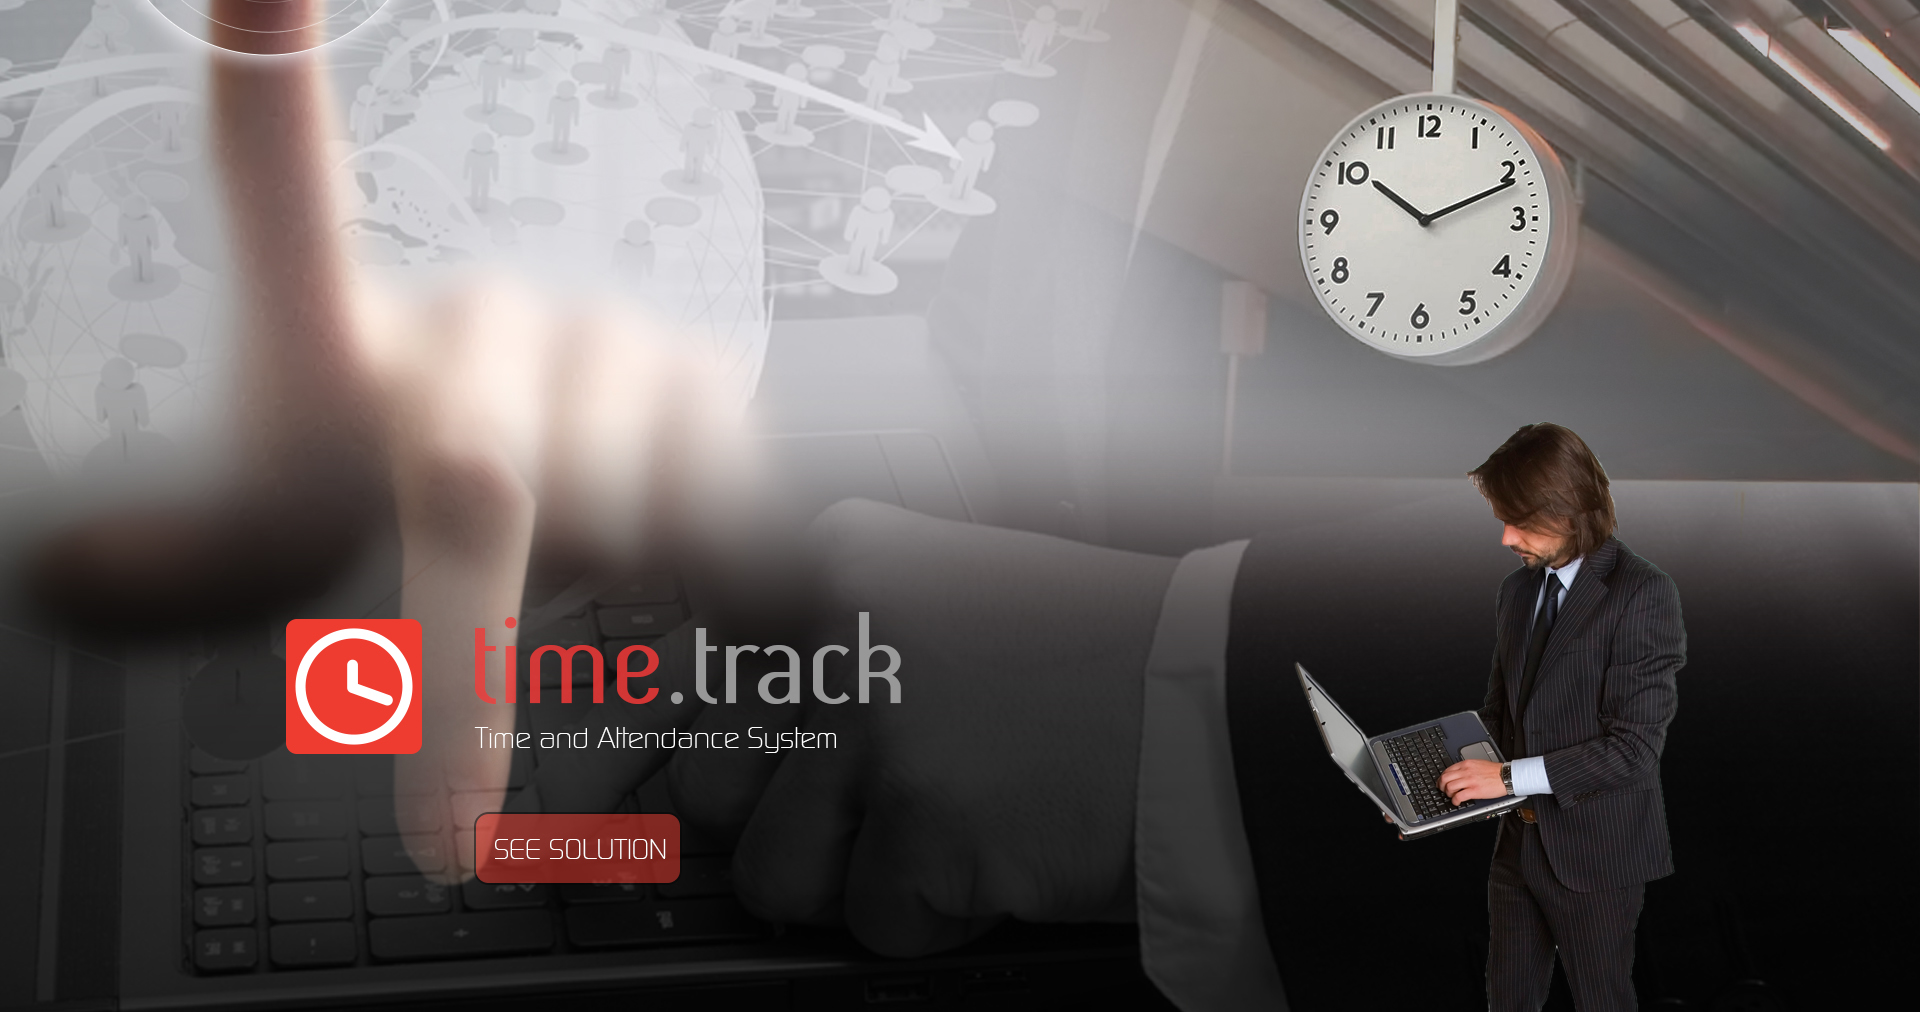 time.track - Time and Attendance System